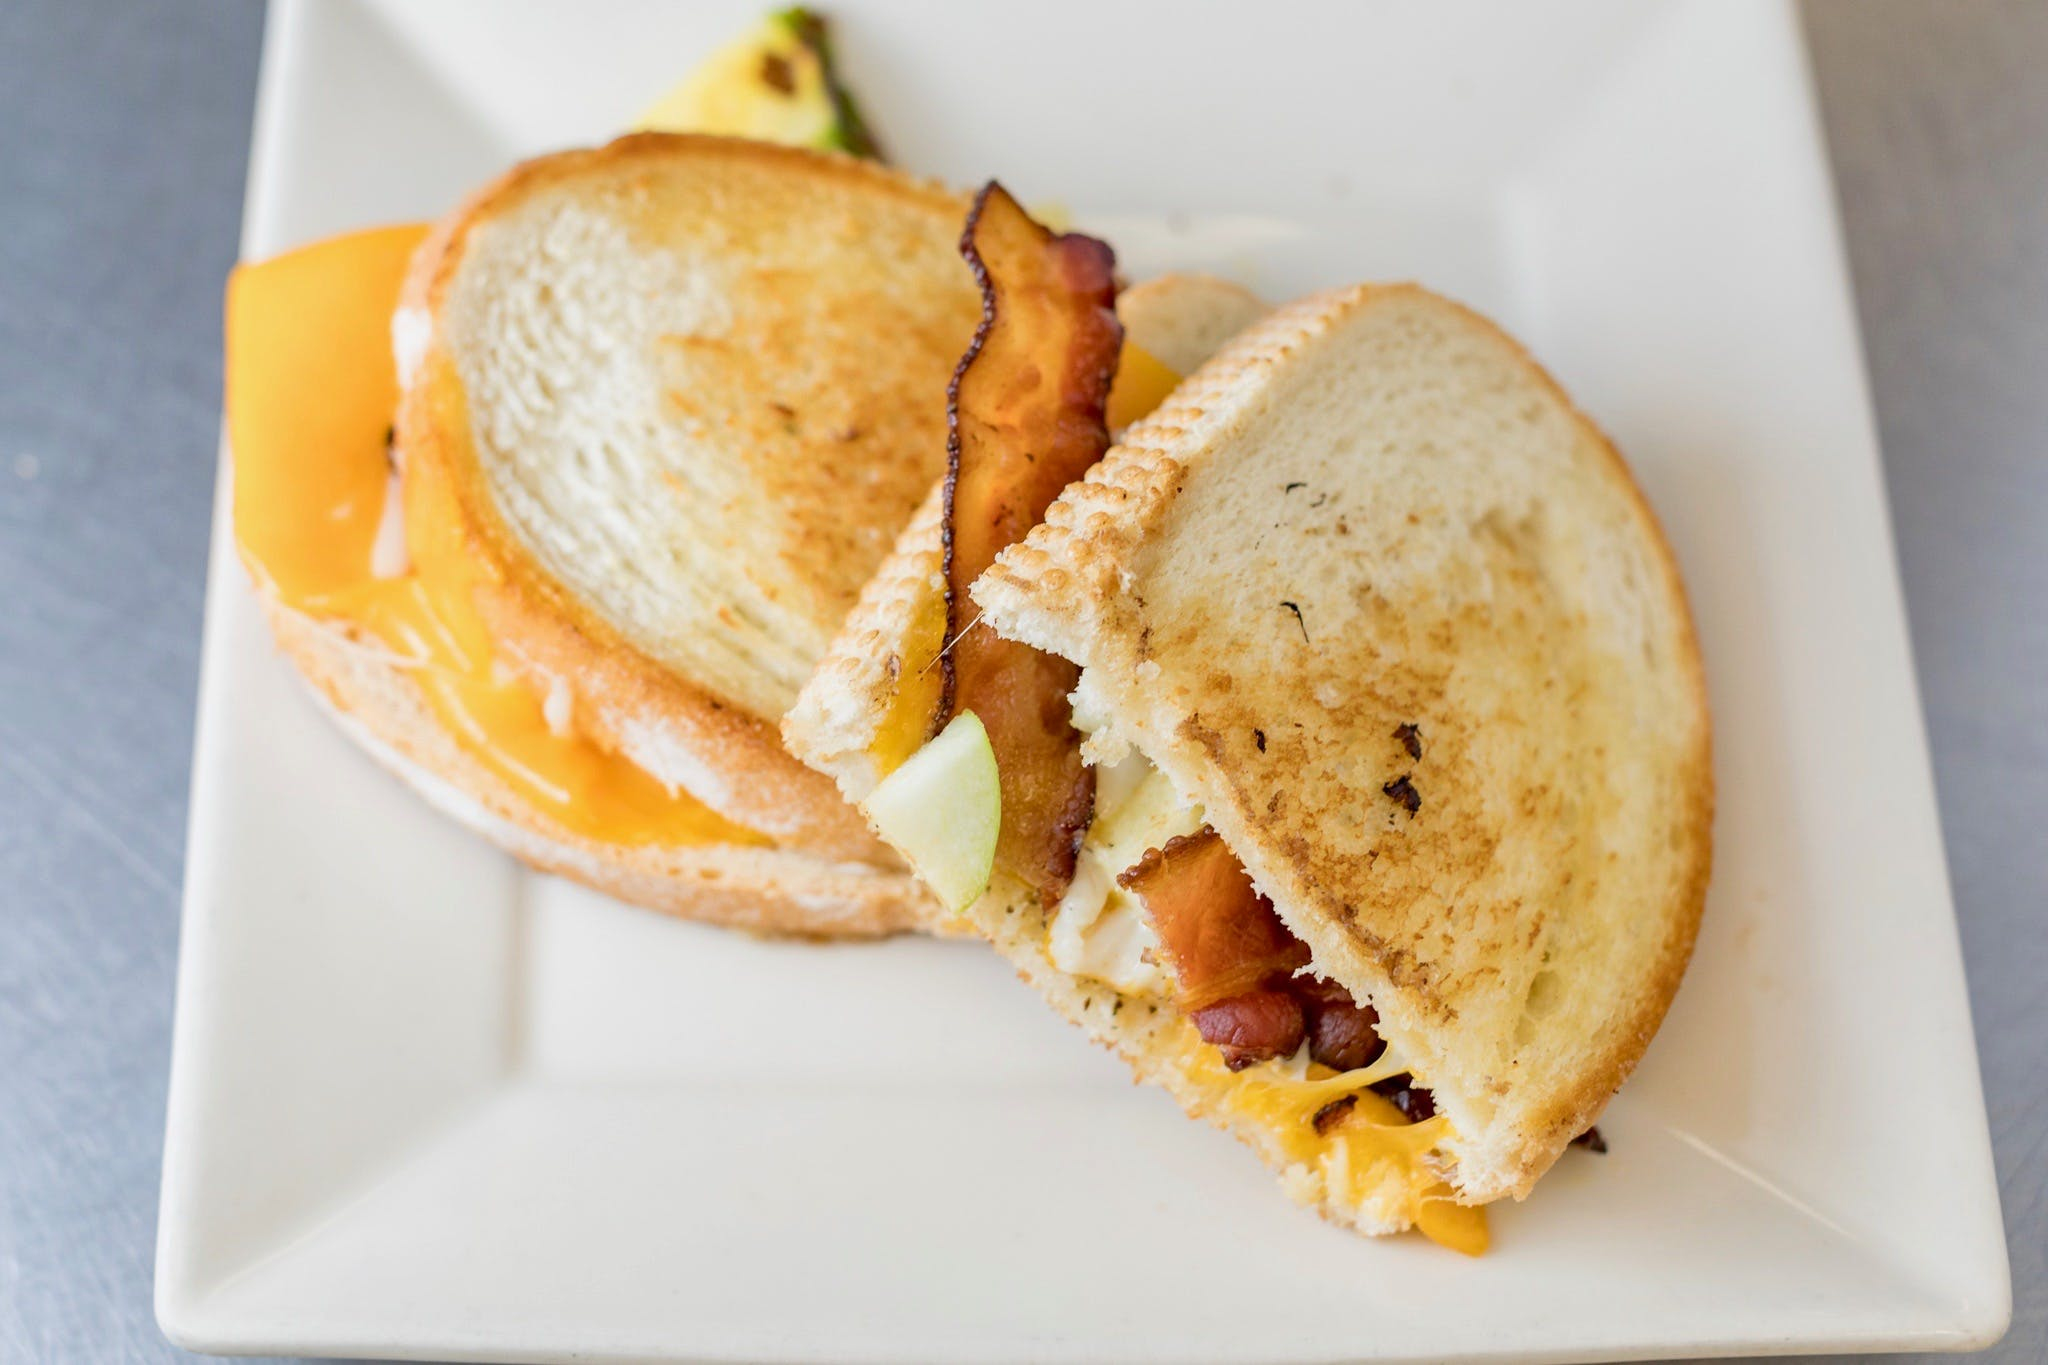 The Normandy Sandwich from The French Press in Eau Claire, WI